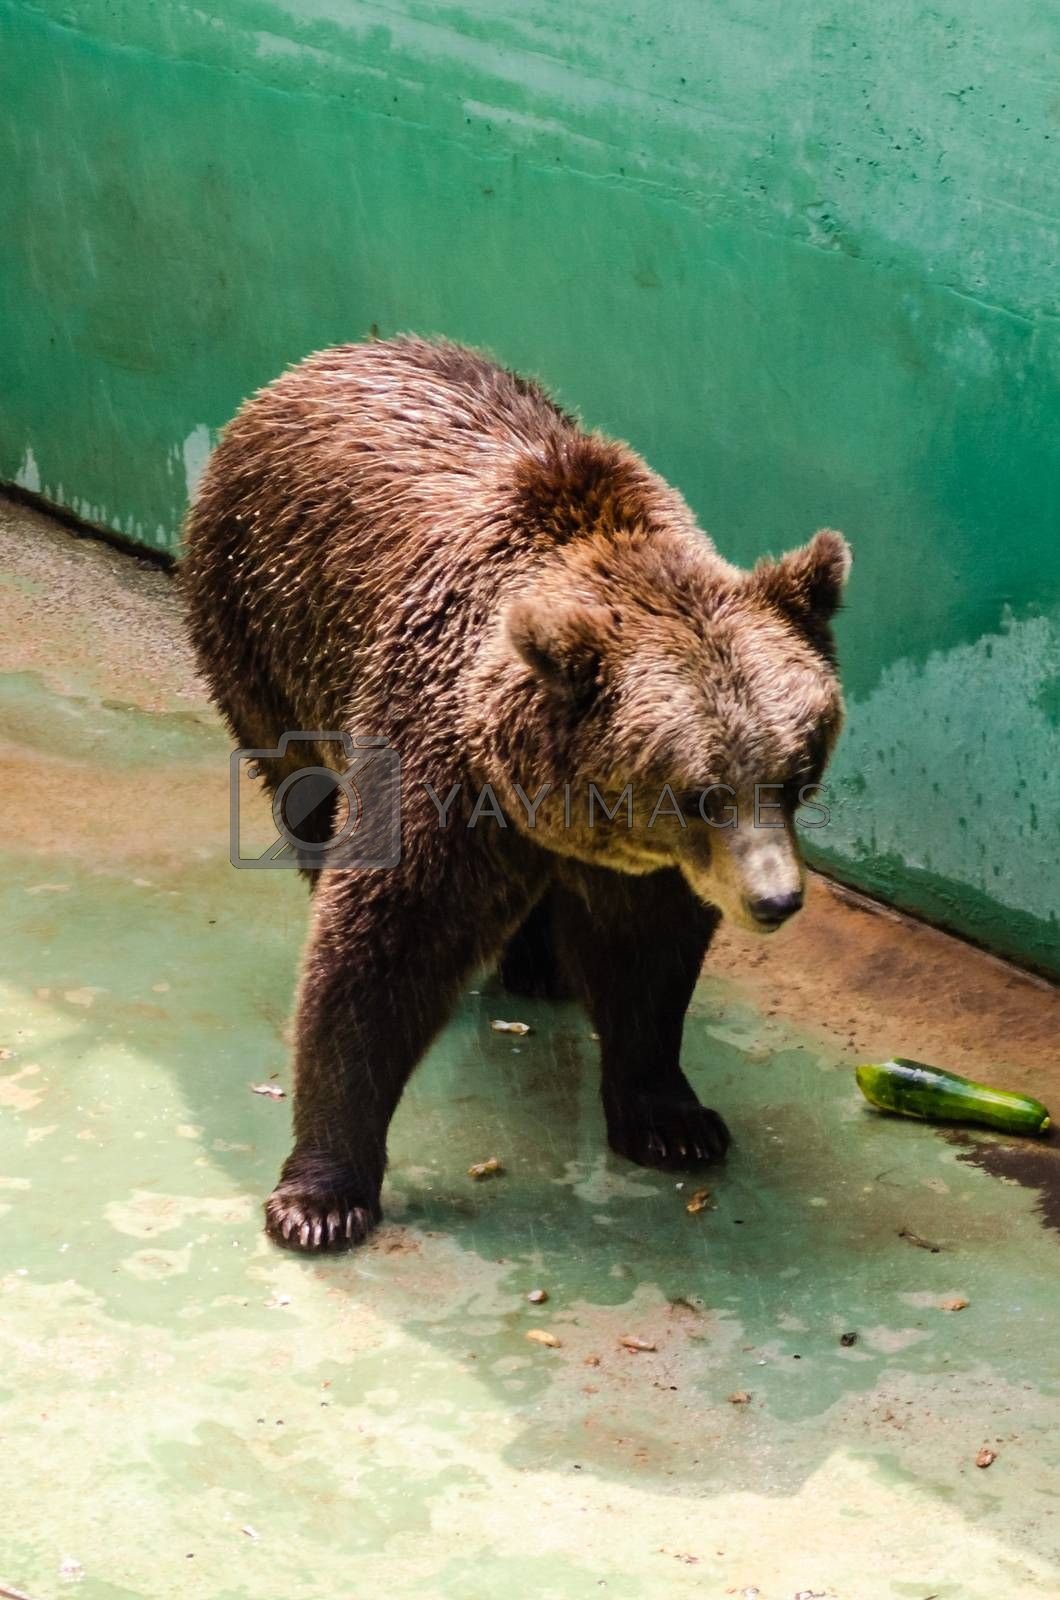 Brown bear waiting for food at the zoo